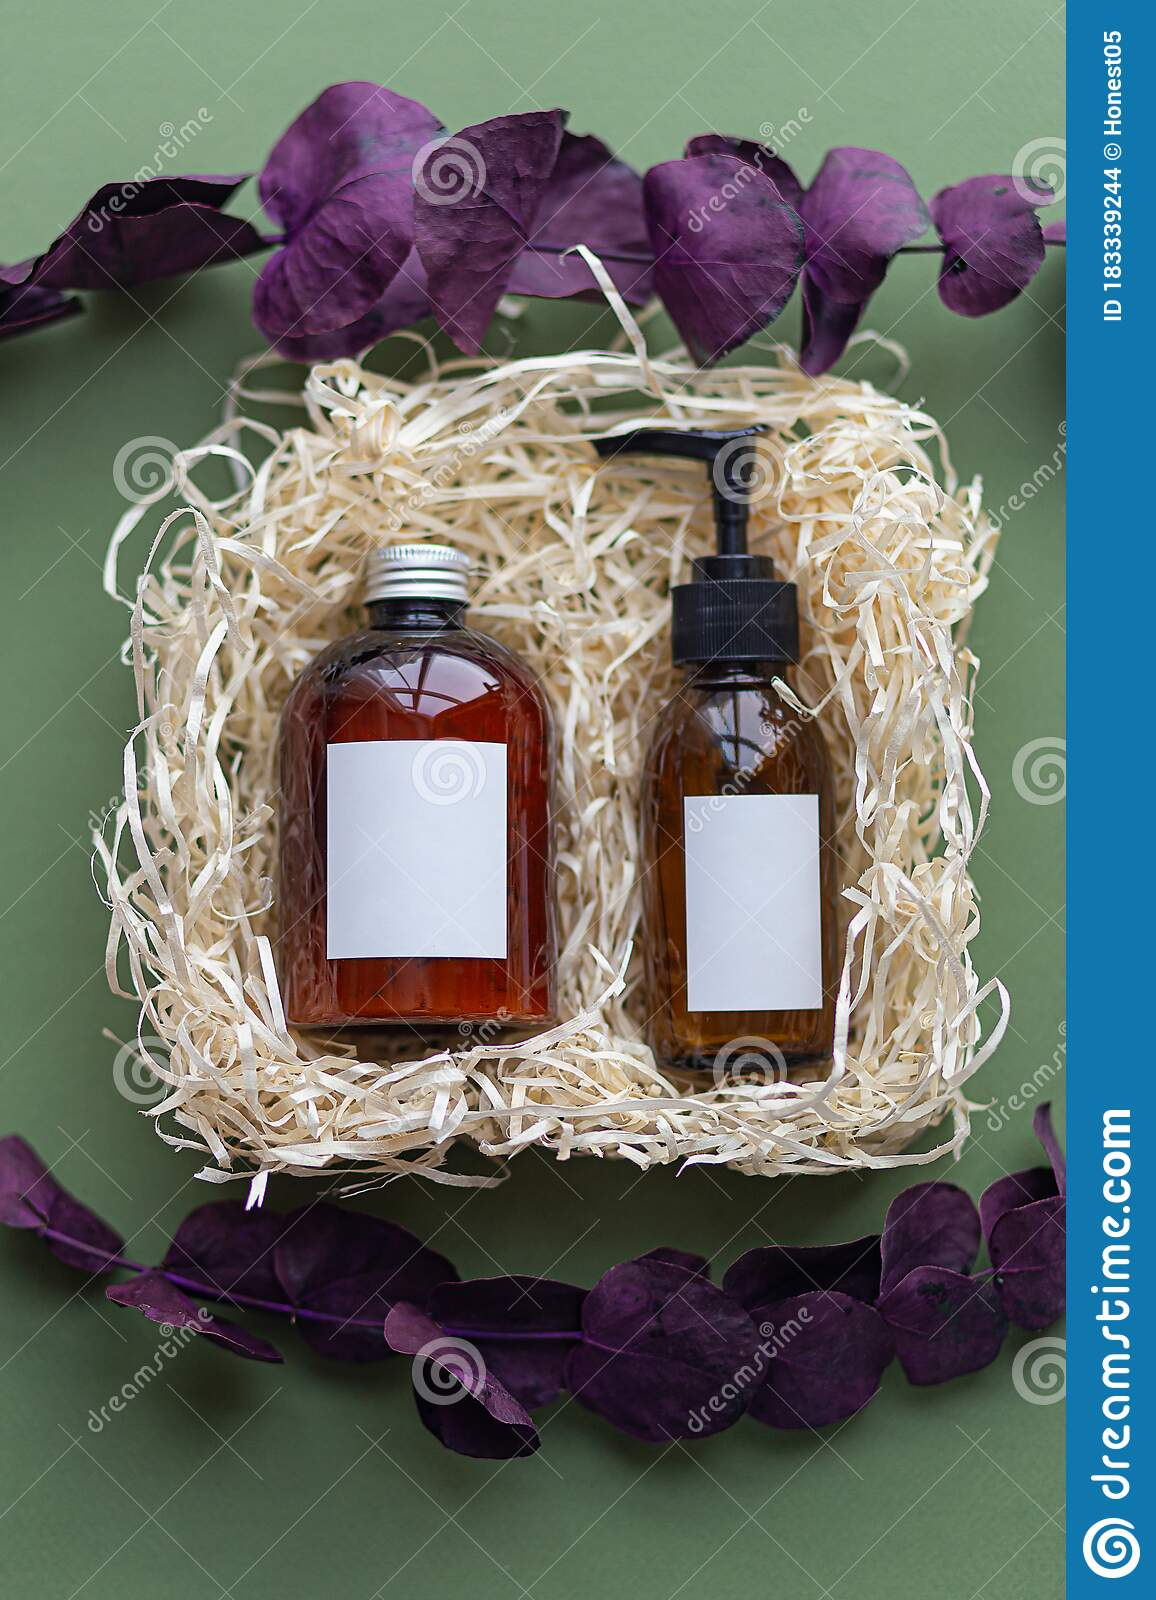 Natural Organic Spa Cosmetic Products Set With Dry Purple Leaves Top View Herbal Skincare Beauty Products On Green Background Stock Photo Image Of Packing Background 183339244